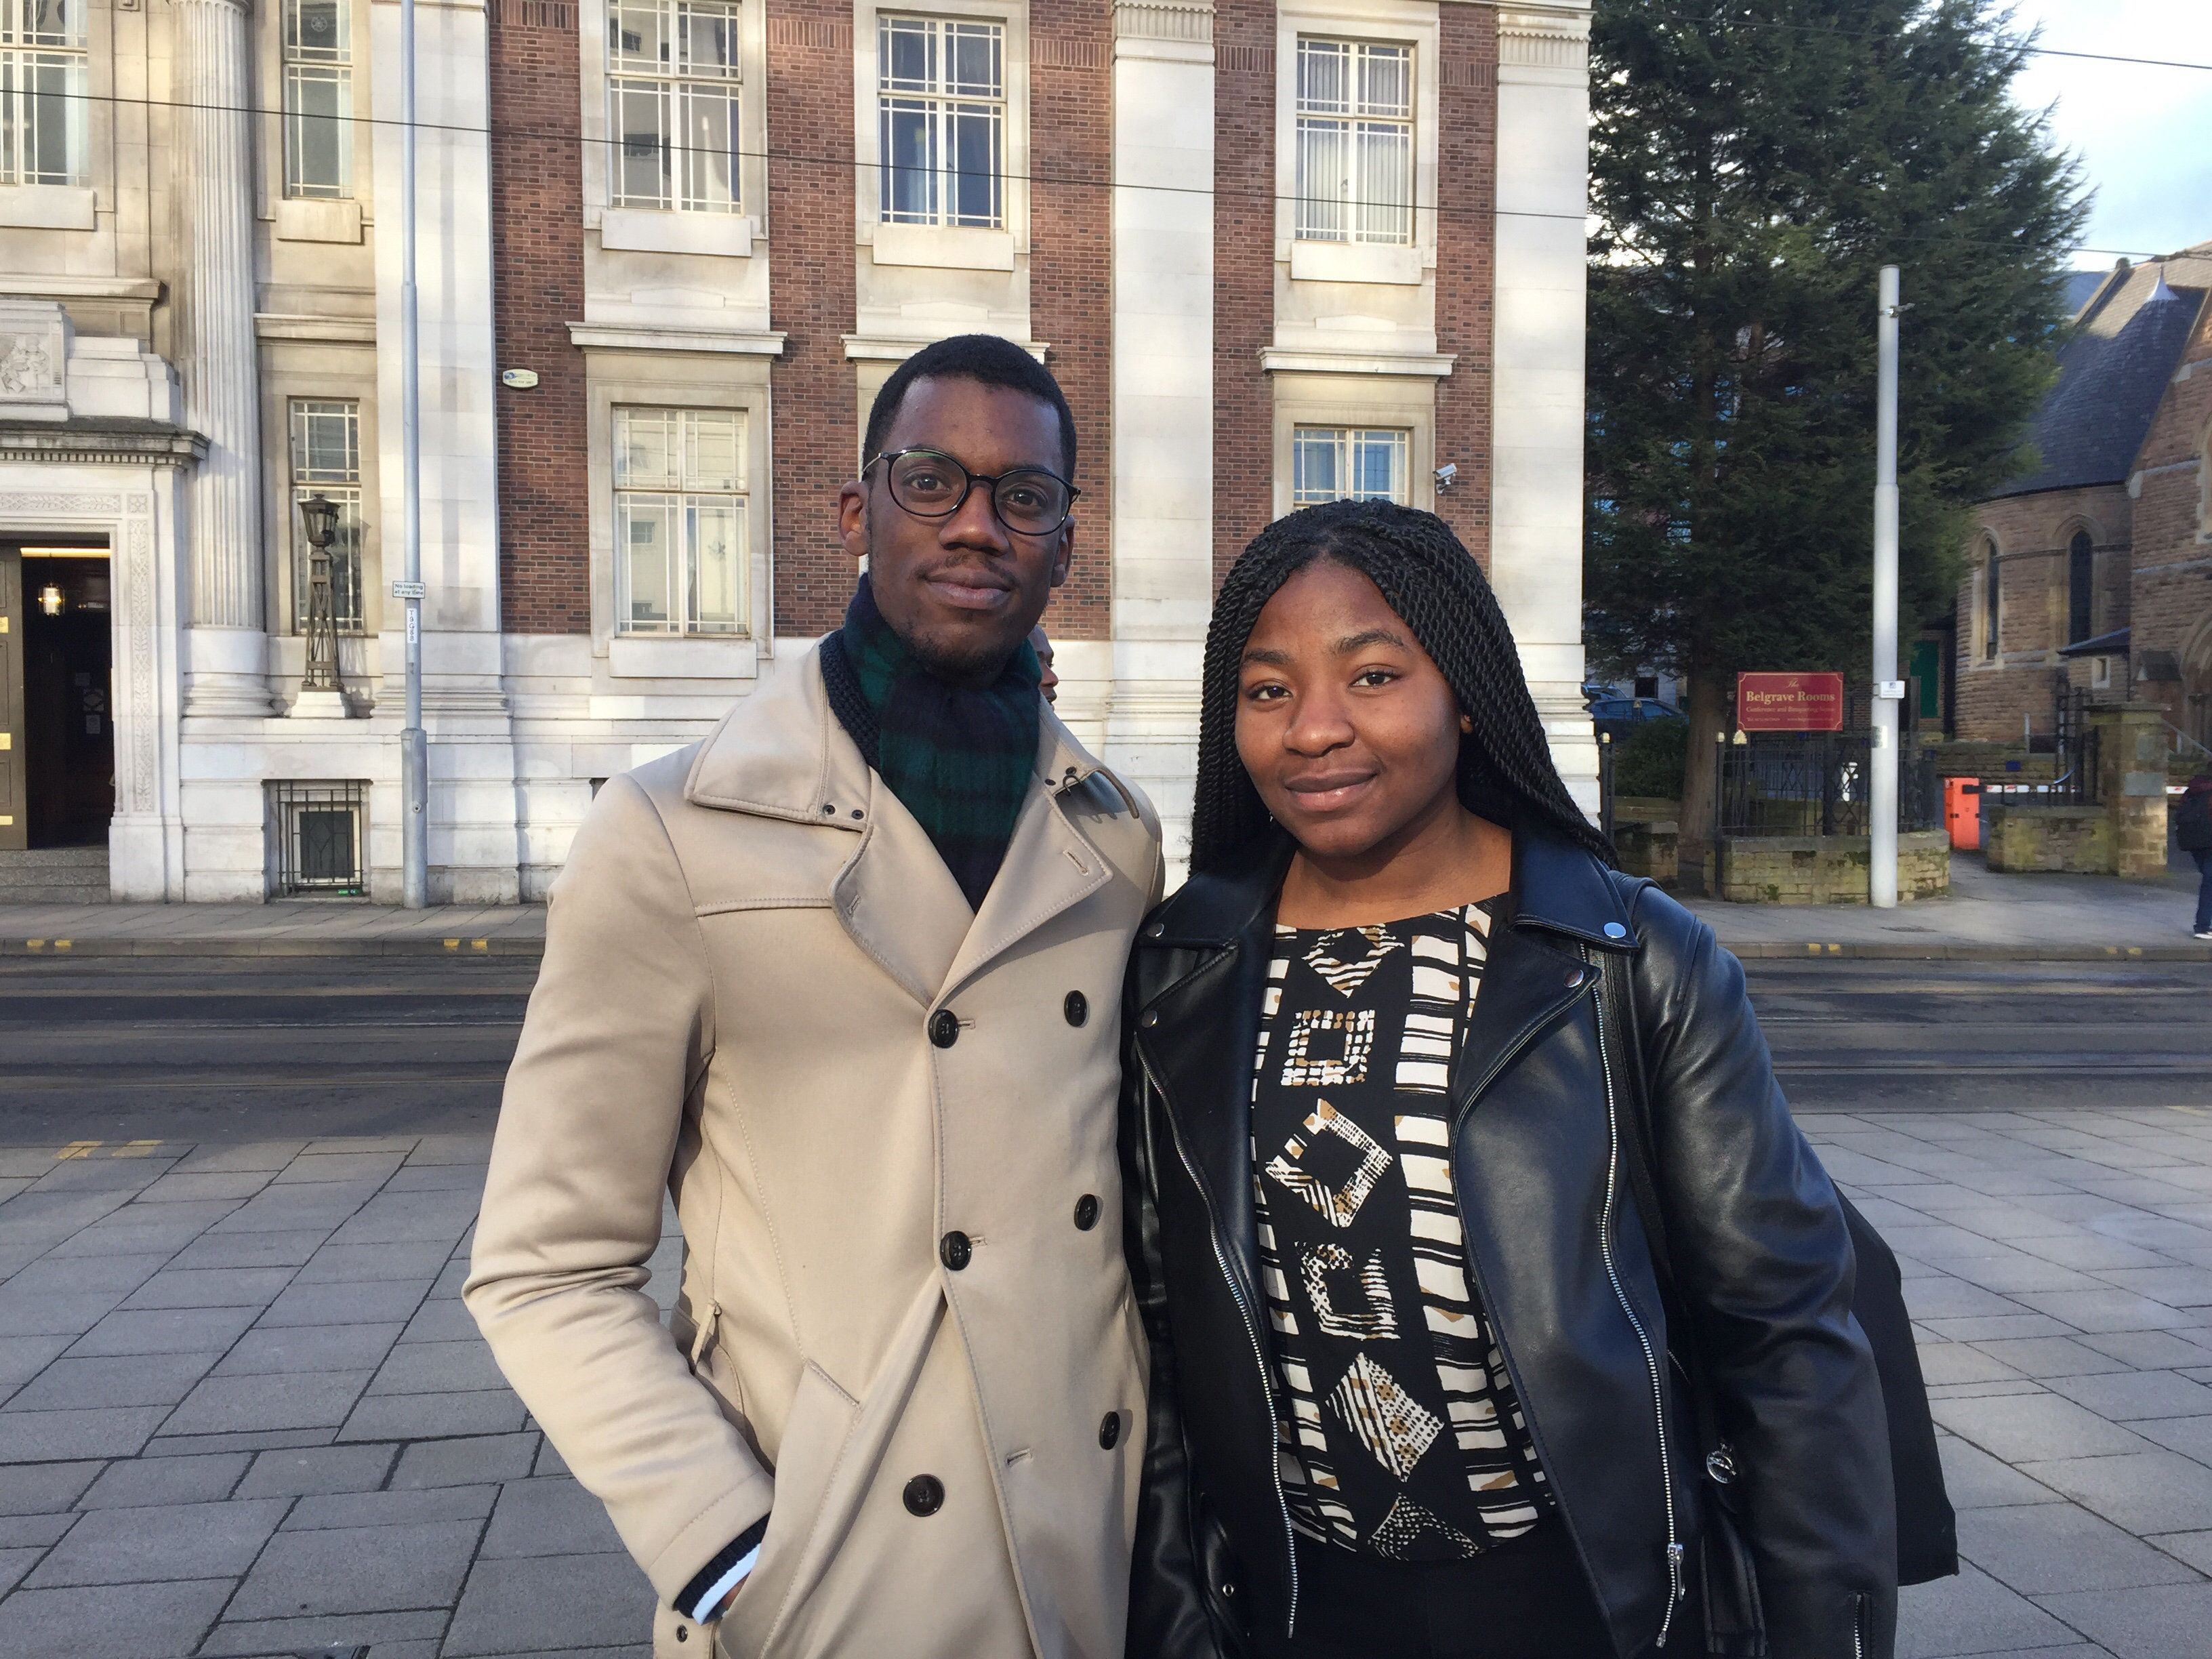 Nottingham Trent Uni Students 'Shocked' And 'Disgusted' By Racist Abuse